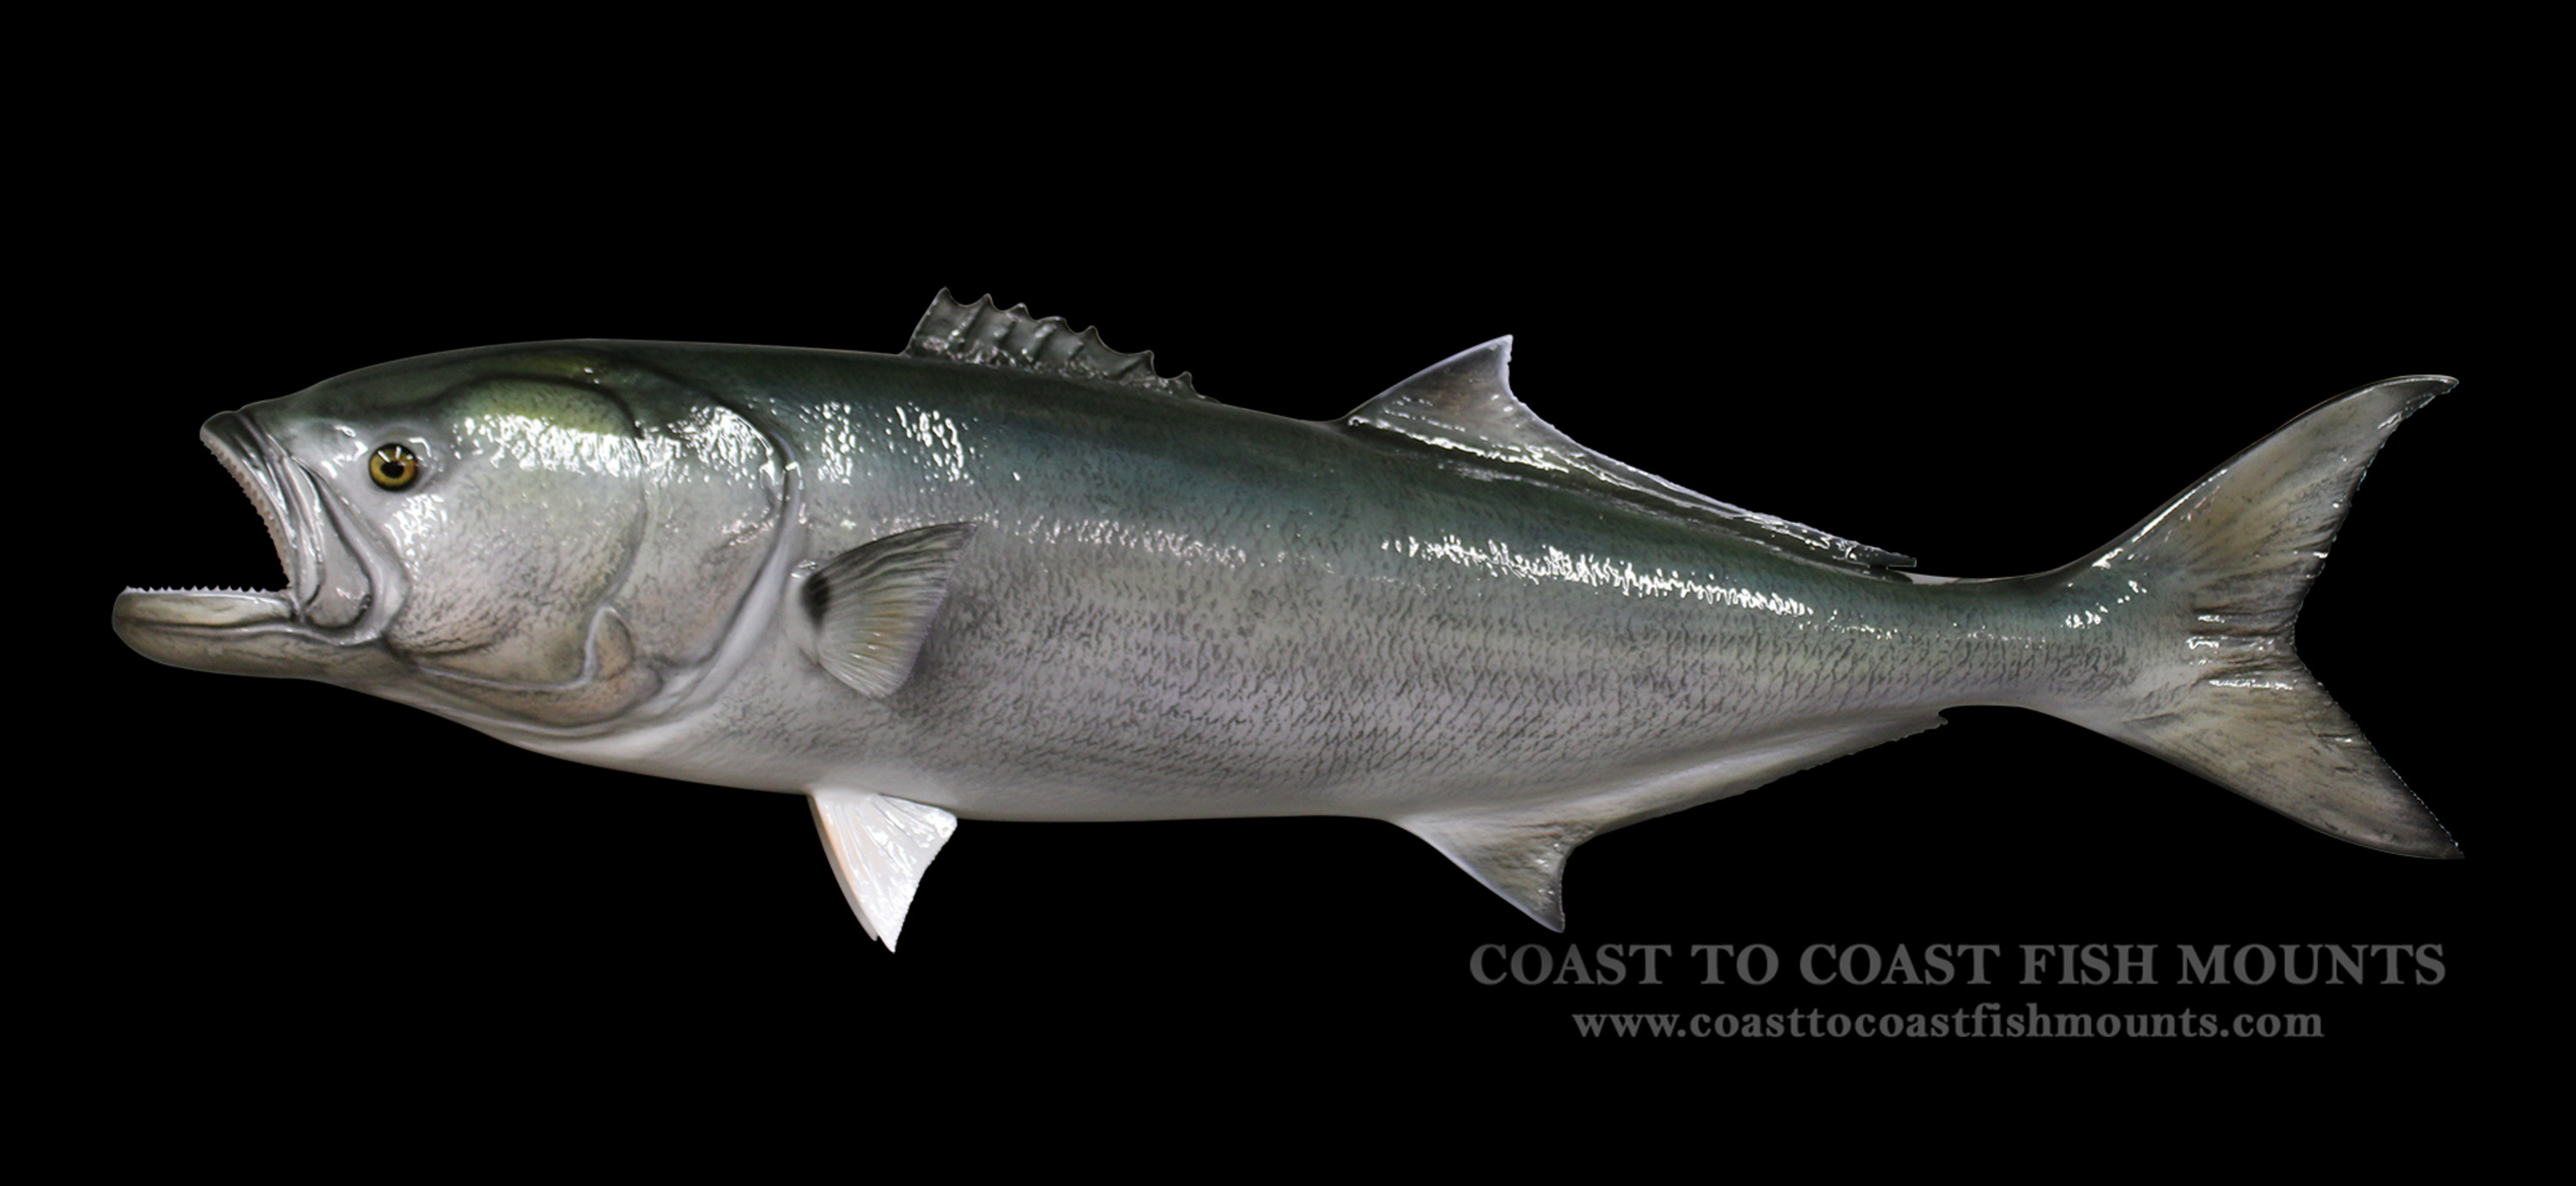 Bluefish fish mount and fish replicas coast to coast for Replica fish mounts